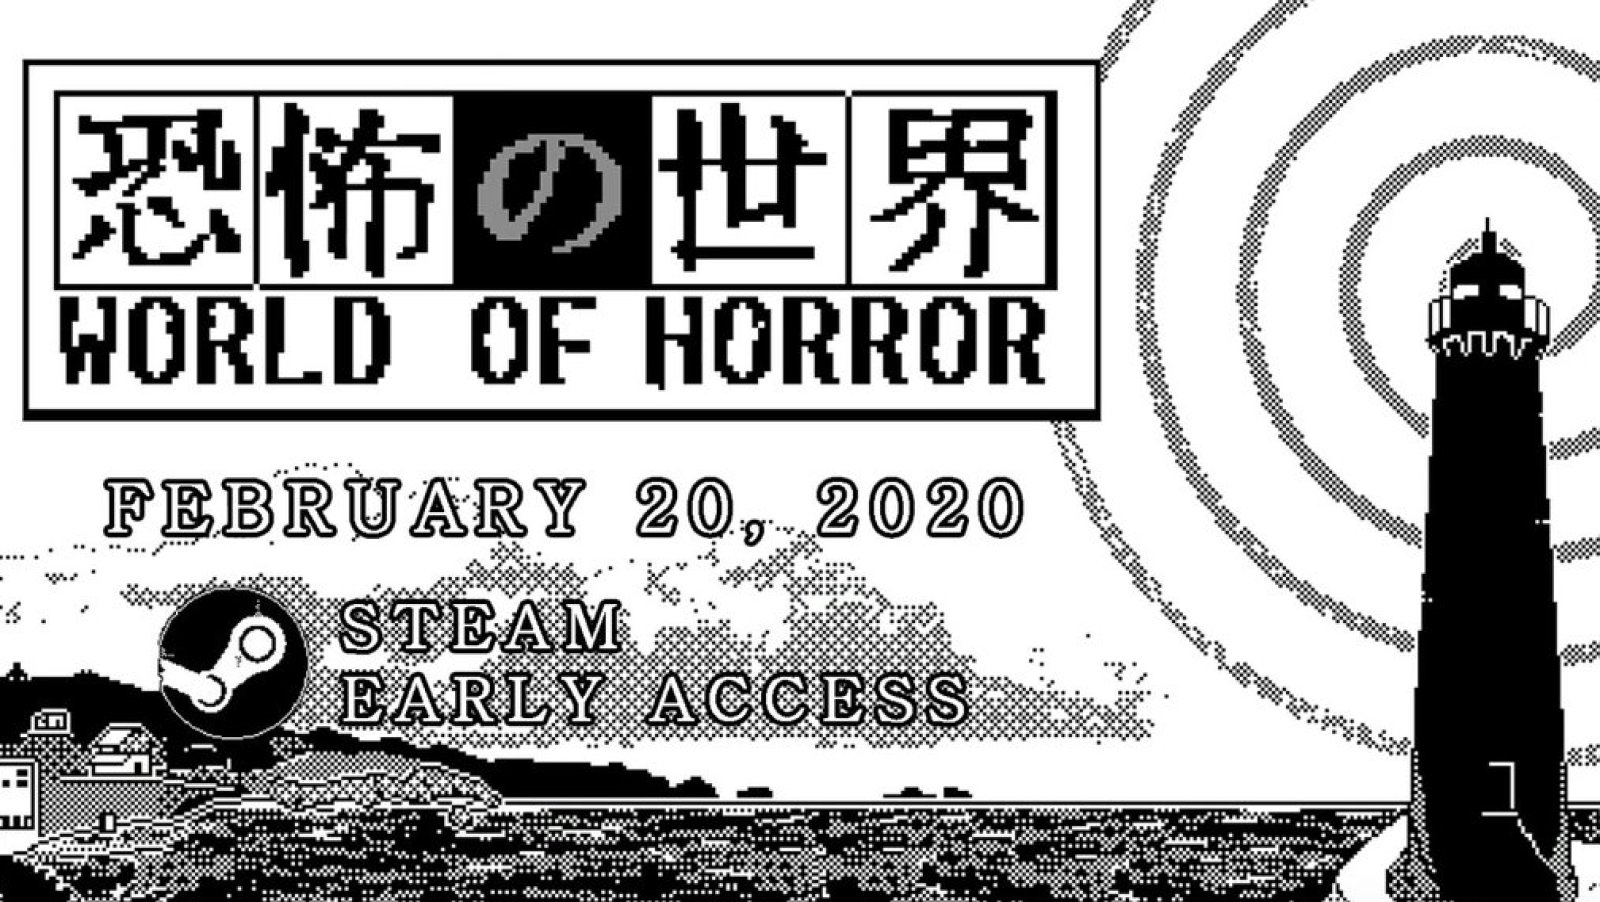 'World of Horror' brings MS Paint terror to Steam on February 20th   DeviceDaily.com